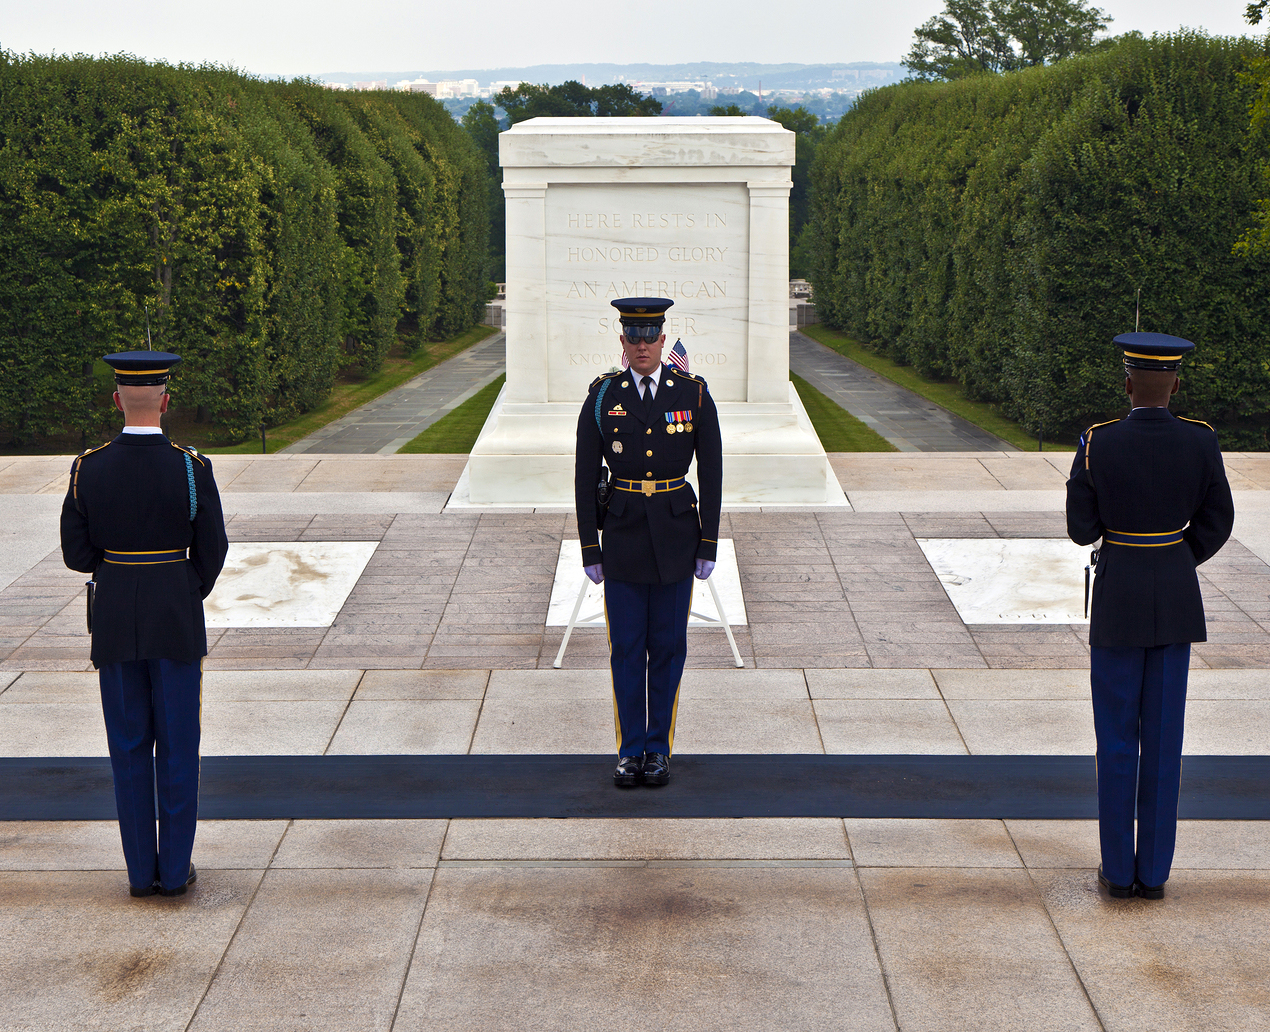 essay on tomb of the unknown soldier Widely circulated text purports to describe the lifelong duties of the honor guard of the tomb of the unknown soldier in the truth about the tomb of.